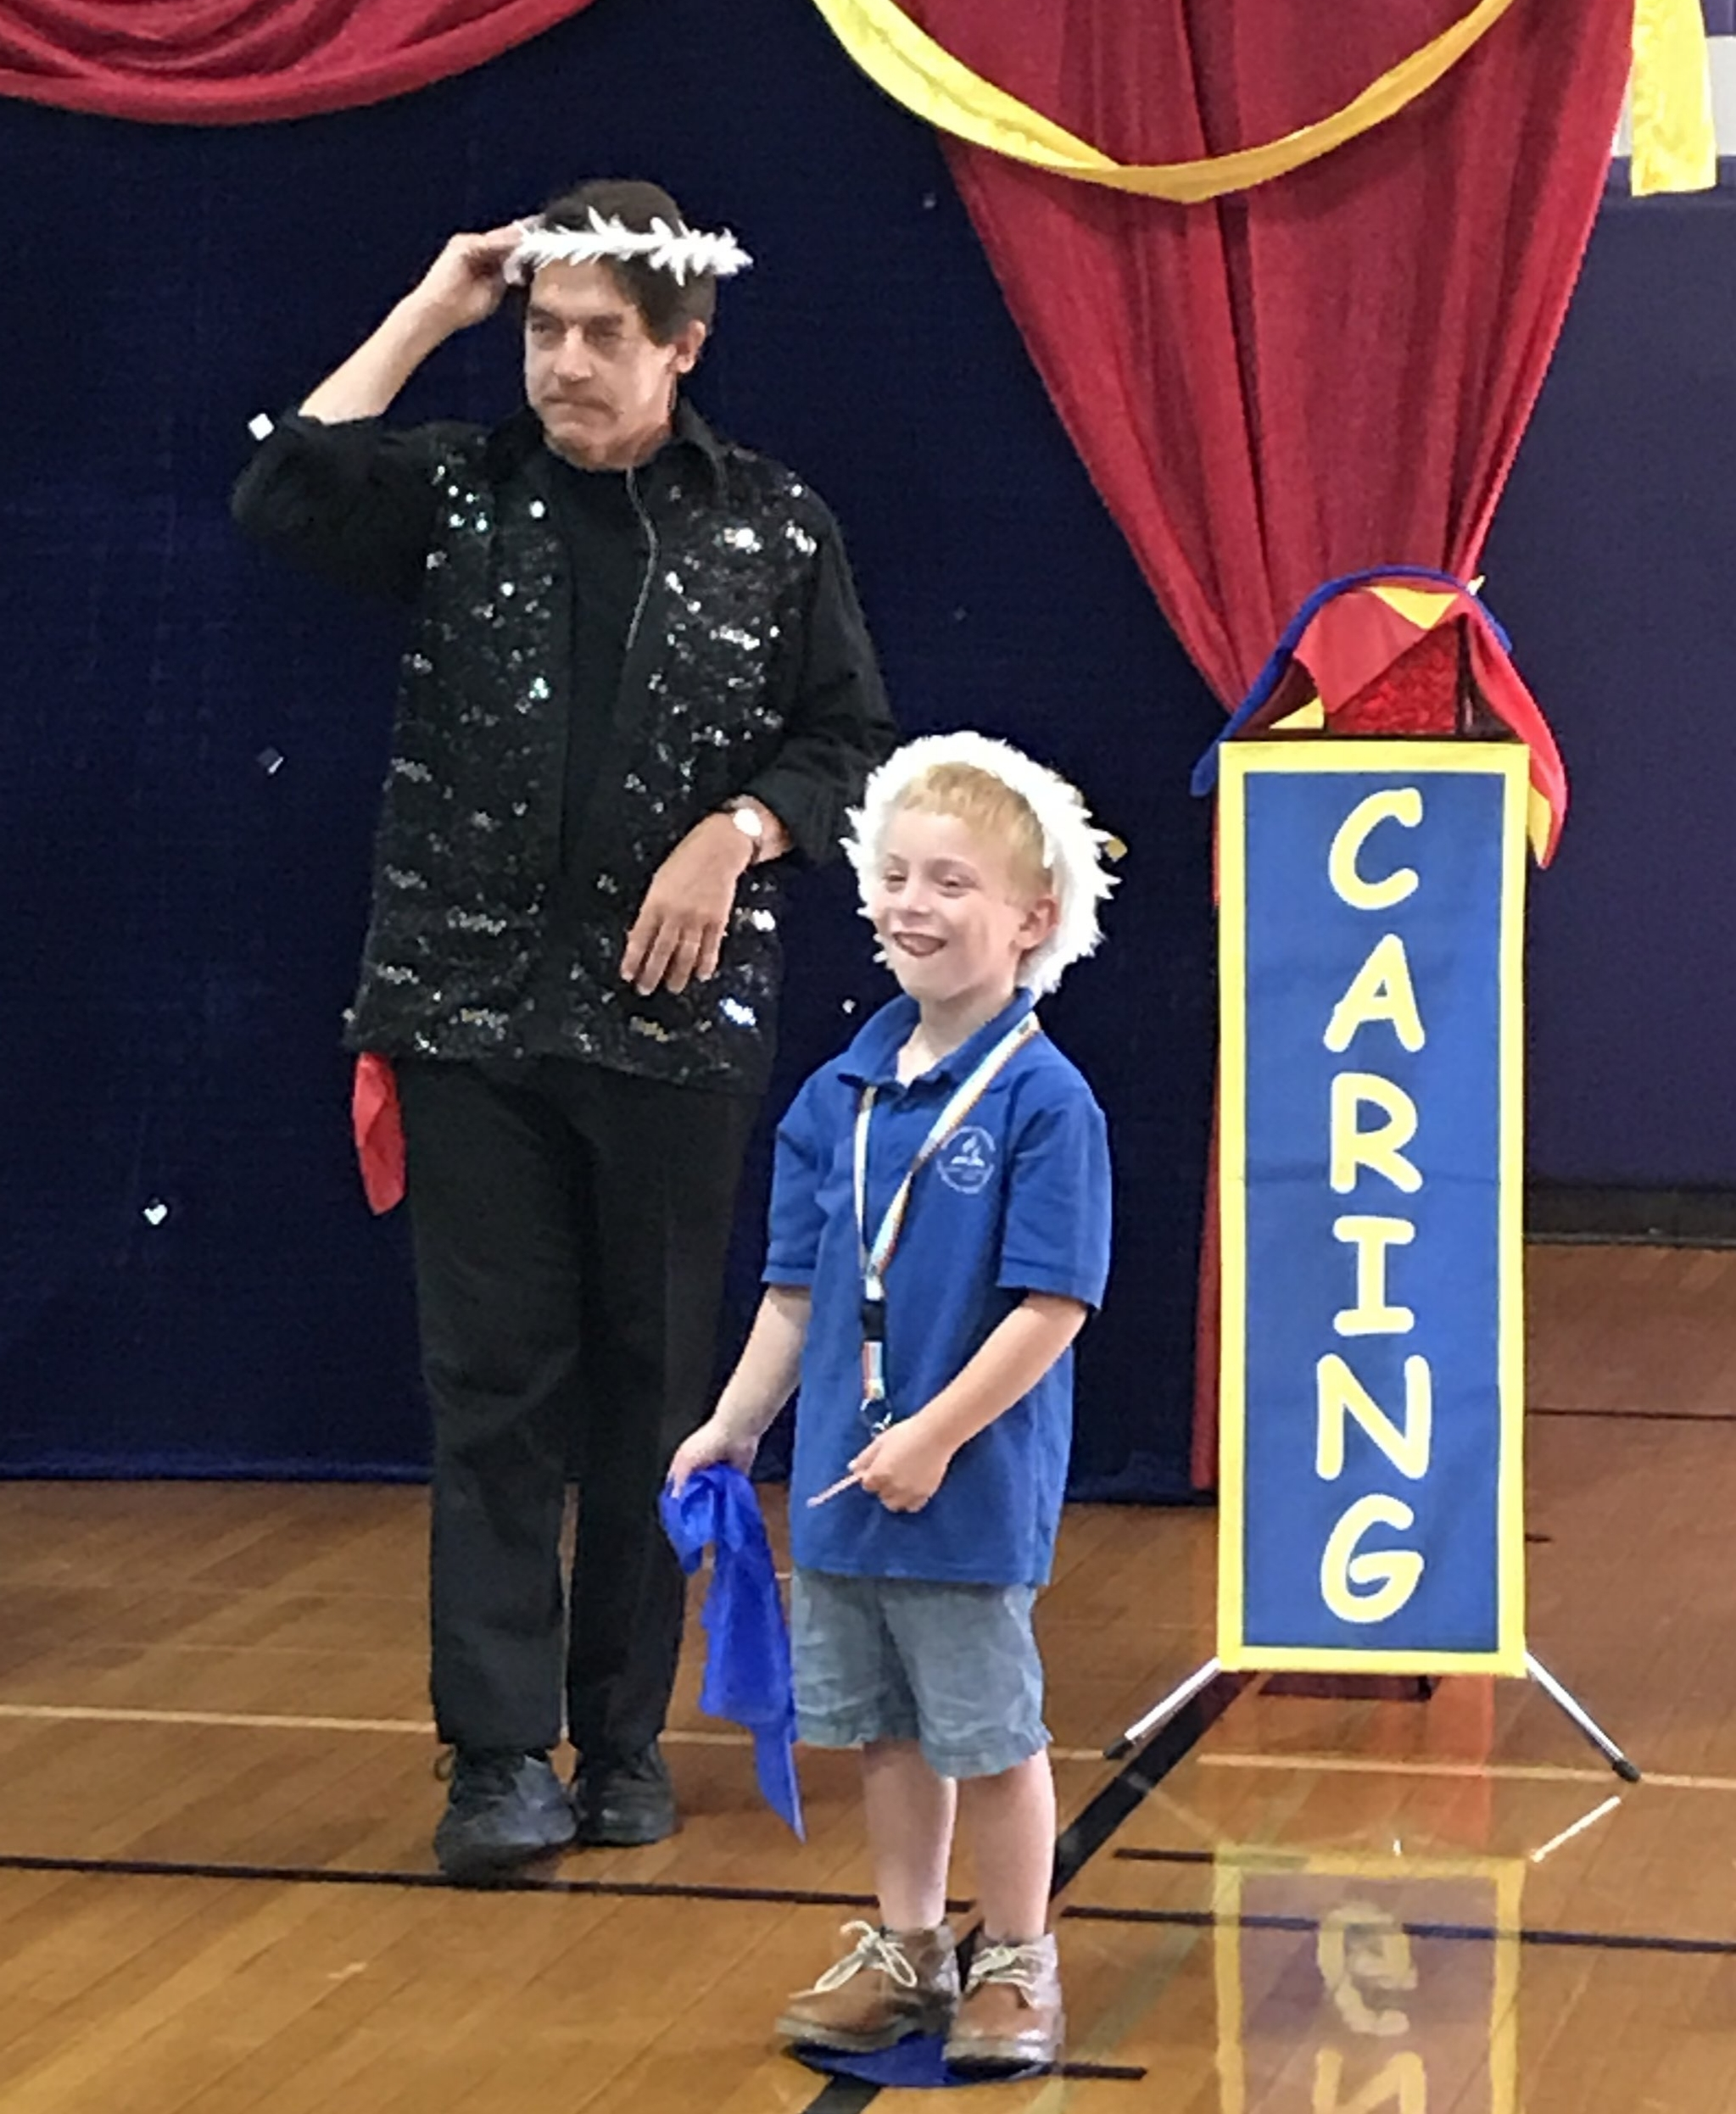 Our elementary students enjoyed a magic show by Jim Vagias demonstrating respect, responsibility and caring for their antibullying assembly.